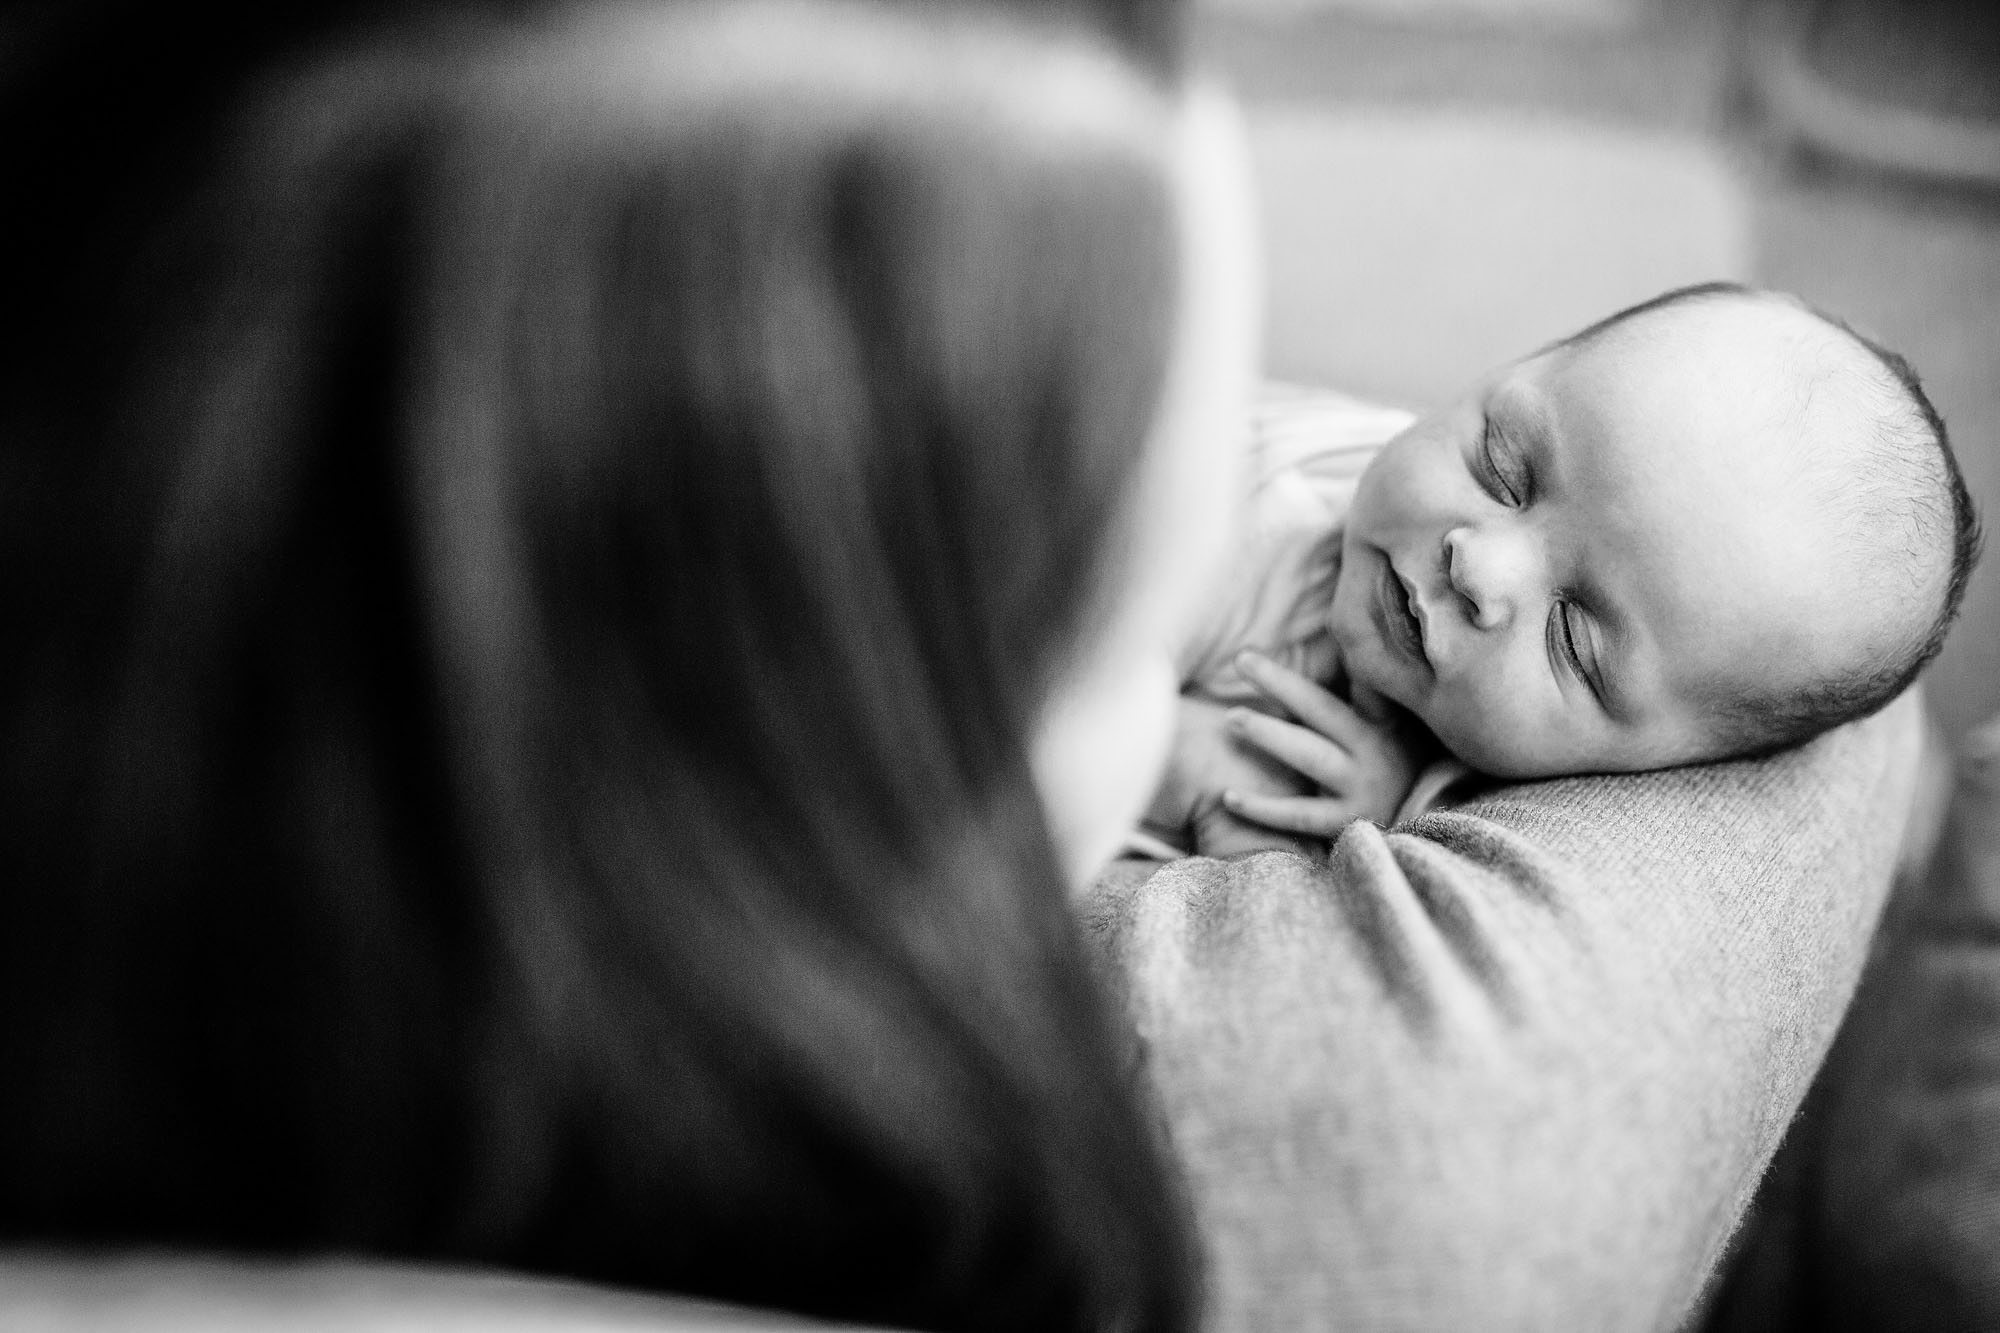 A newborn sleeps and is held by his mother during a peaceful in-home lifestyle photo session in Sacramento, California.